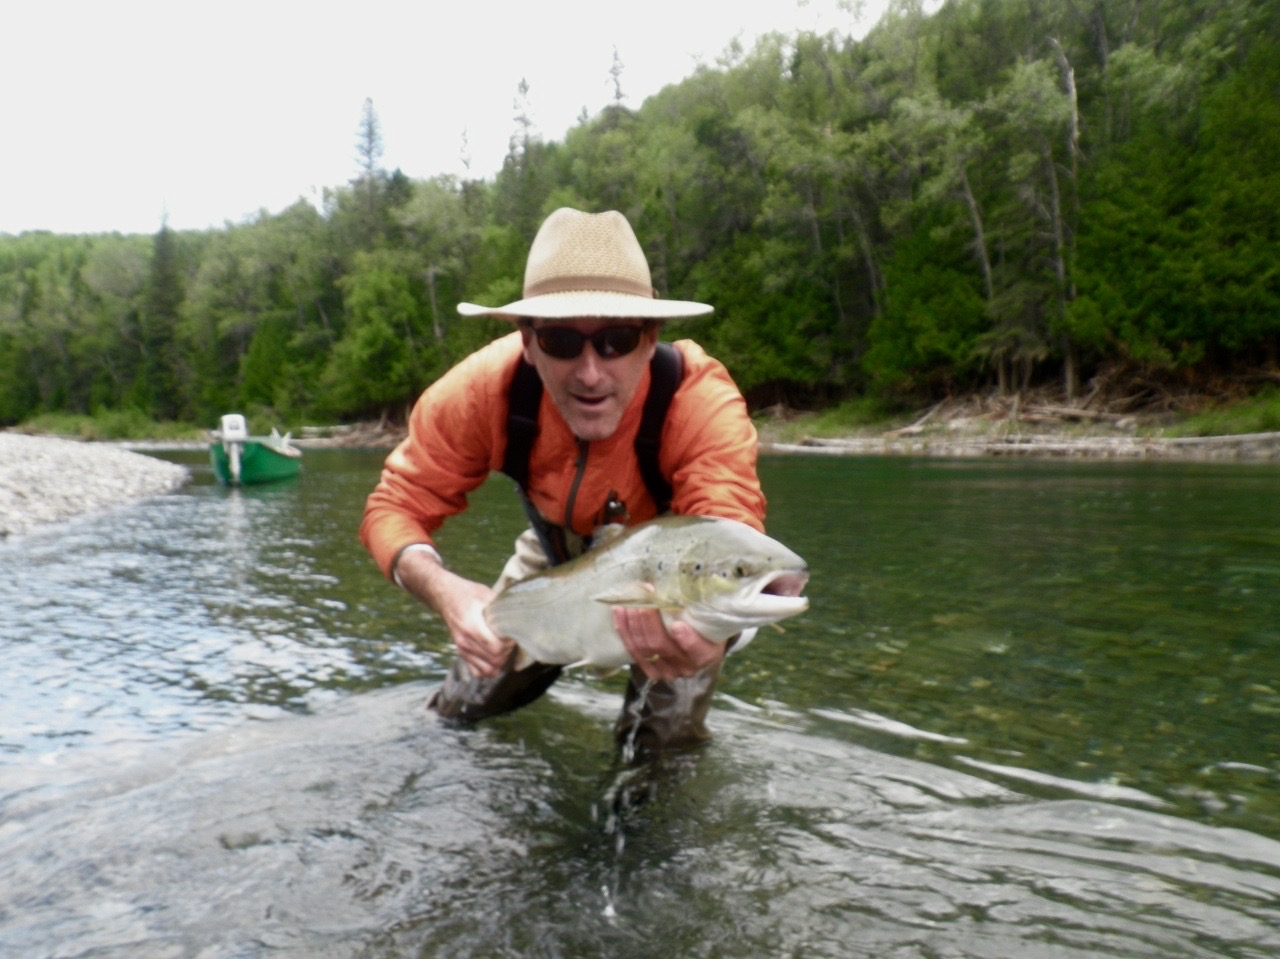 Patrice Vezina with his first of the season on Bonaventure, way to go Pat! see you again in a couple of weeks.